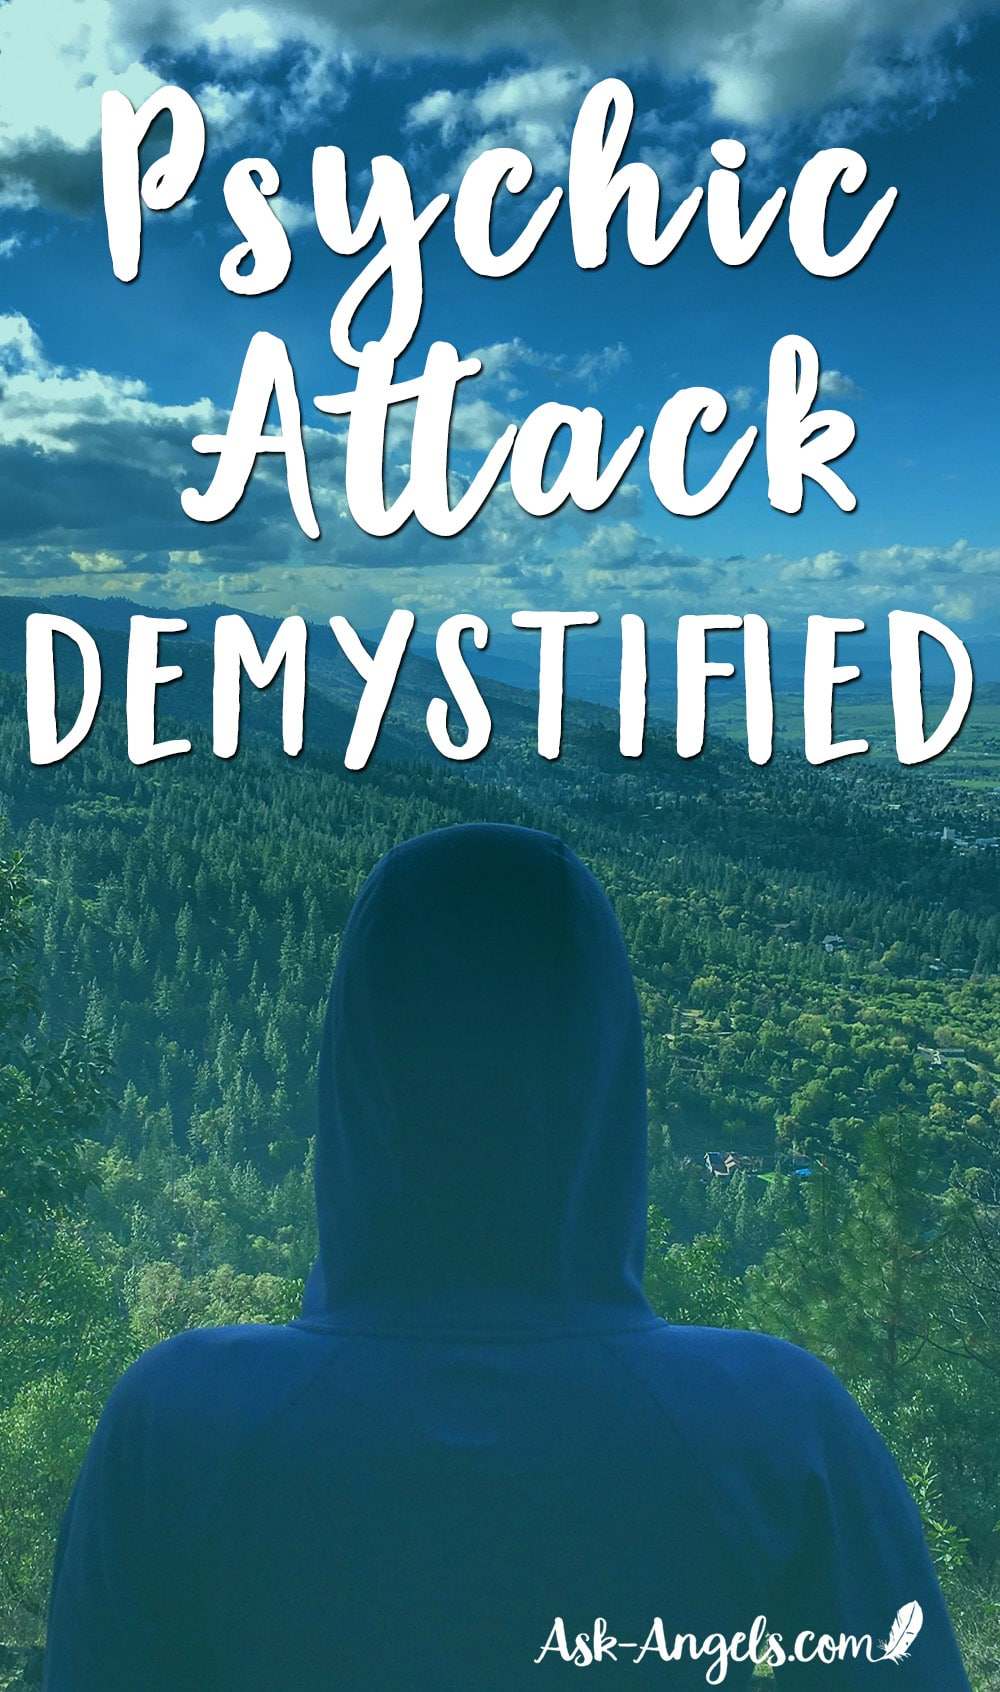 Psychic Attack Demystified